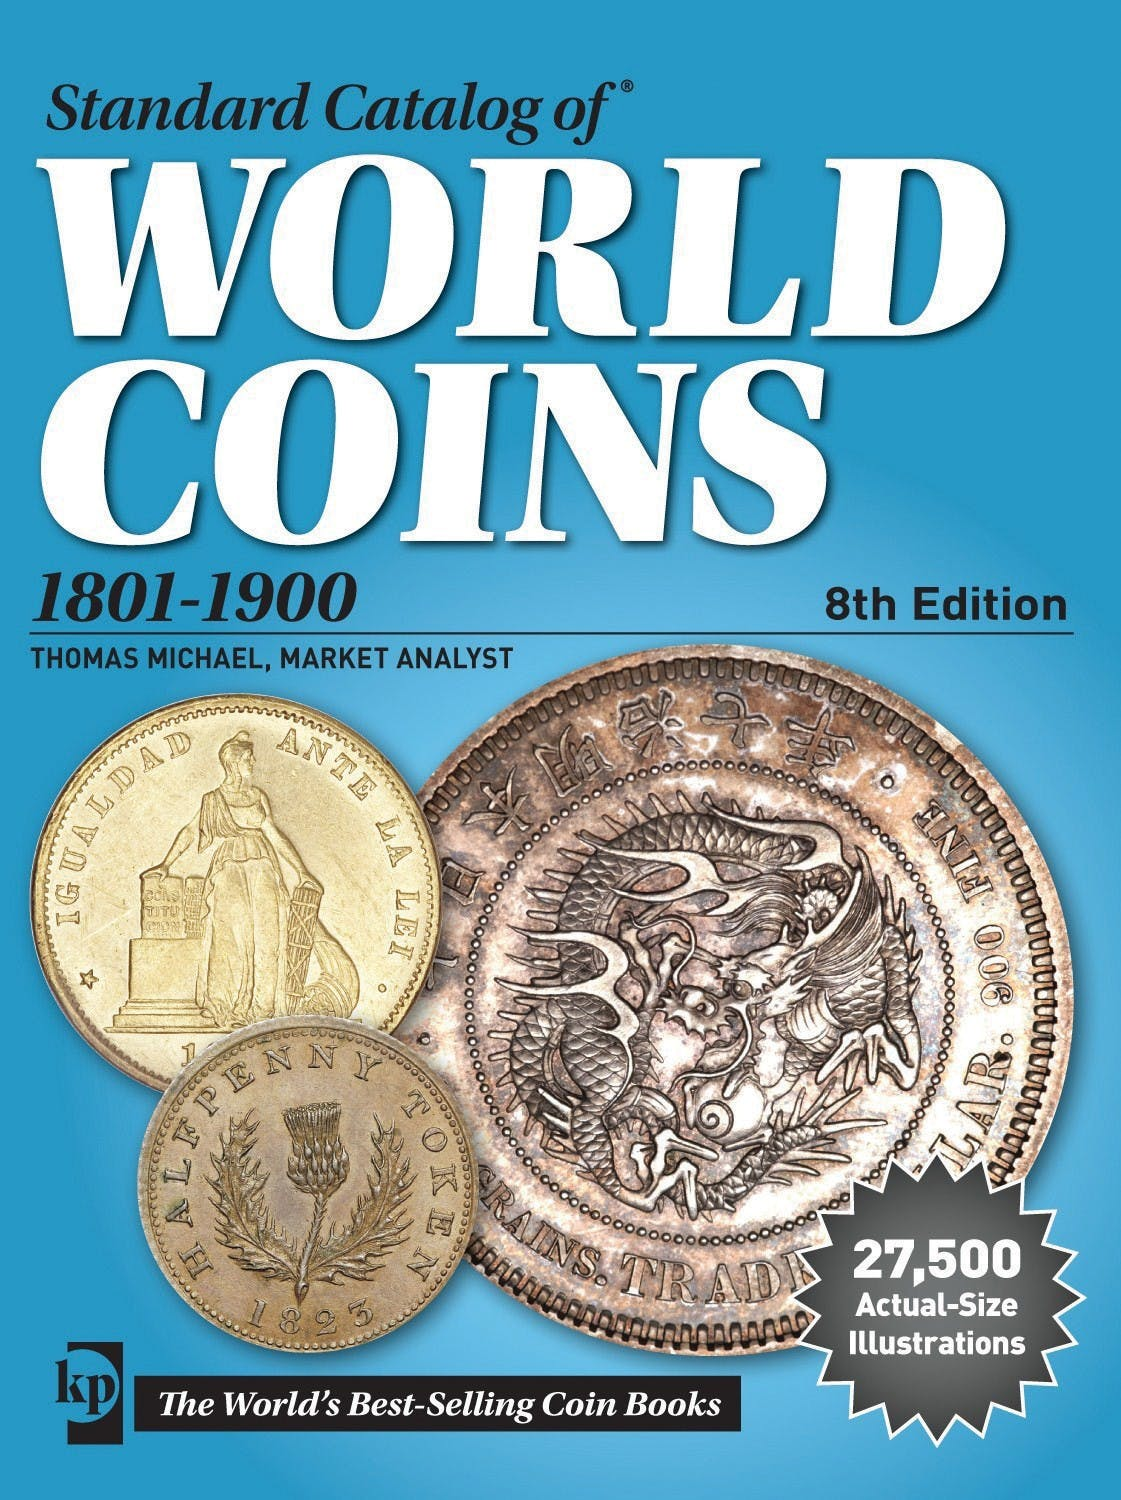 Krause World Coins 1801-1900 8th Edition in the Token Publishing Shop